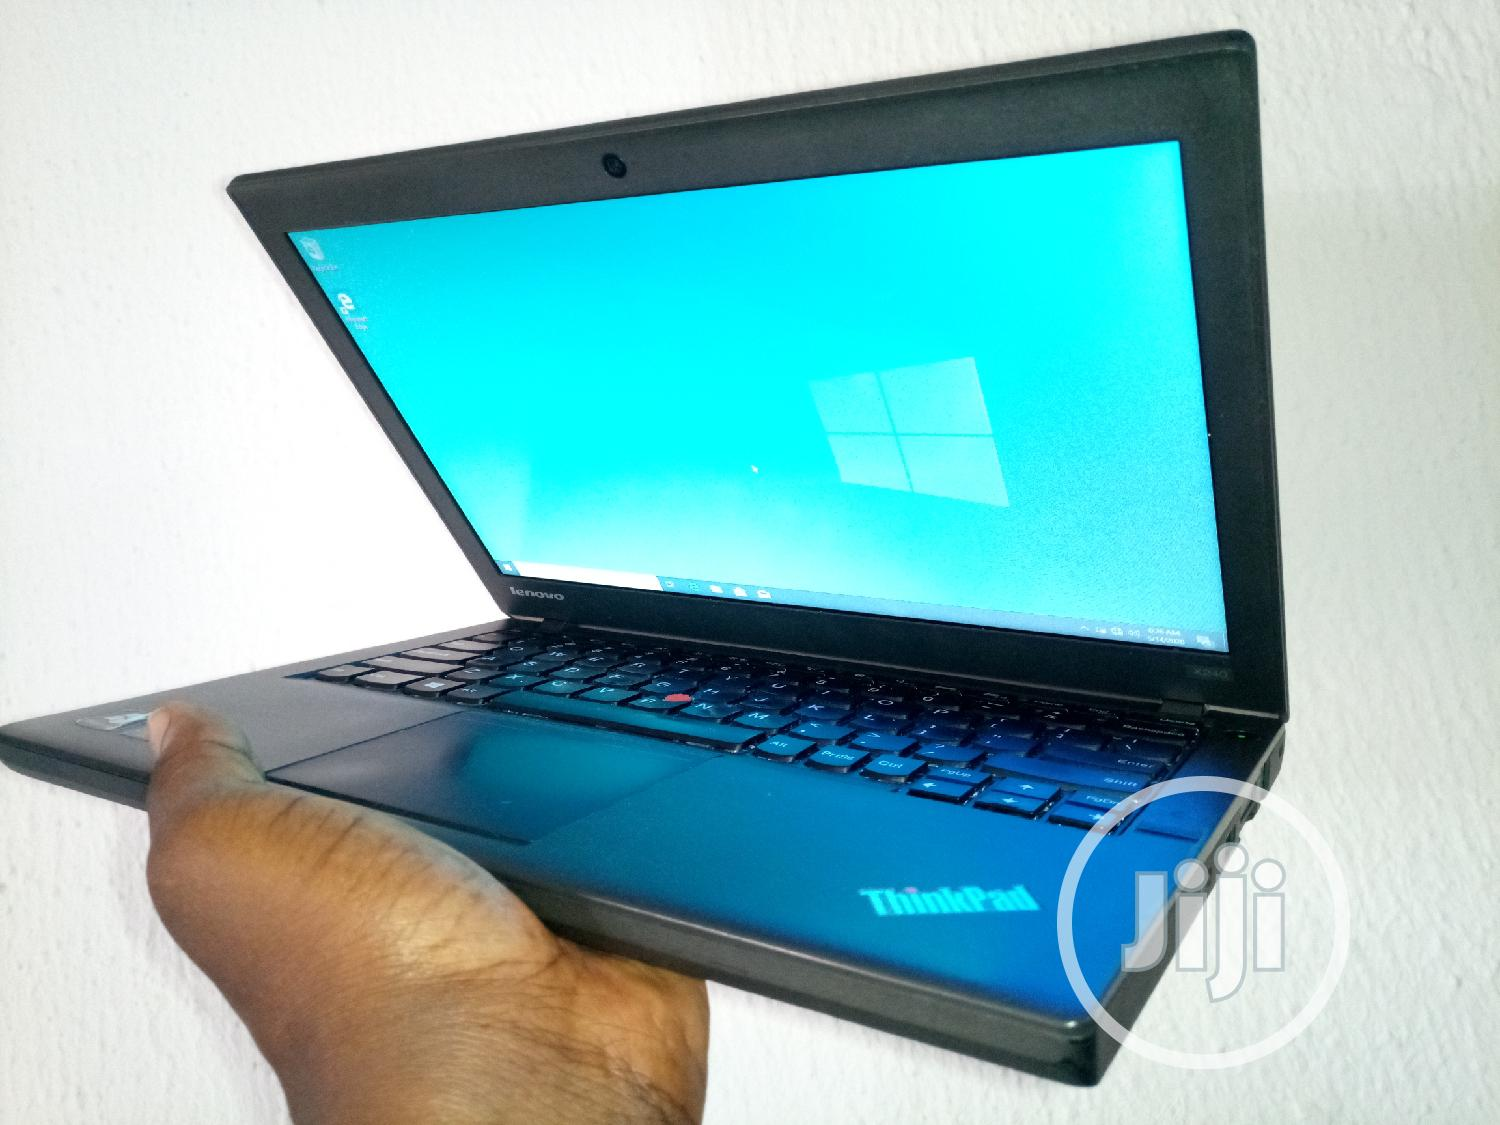 Laptop Lenovo ThinkPad X240 4GB Intel Core I5 HDD 500GB | Laptops & Computers for sale in Enugu, Enugu State, Nigeria